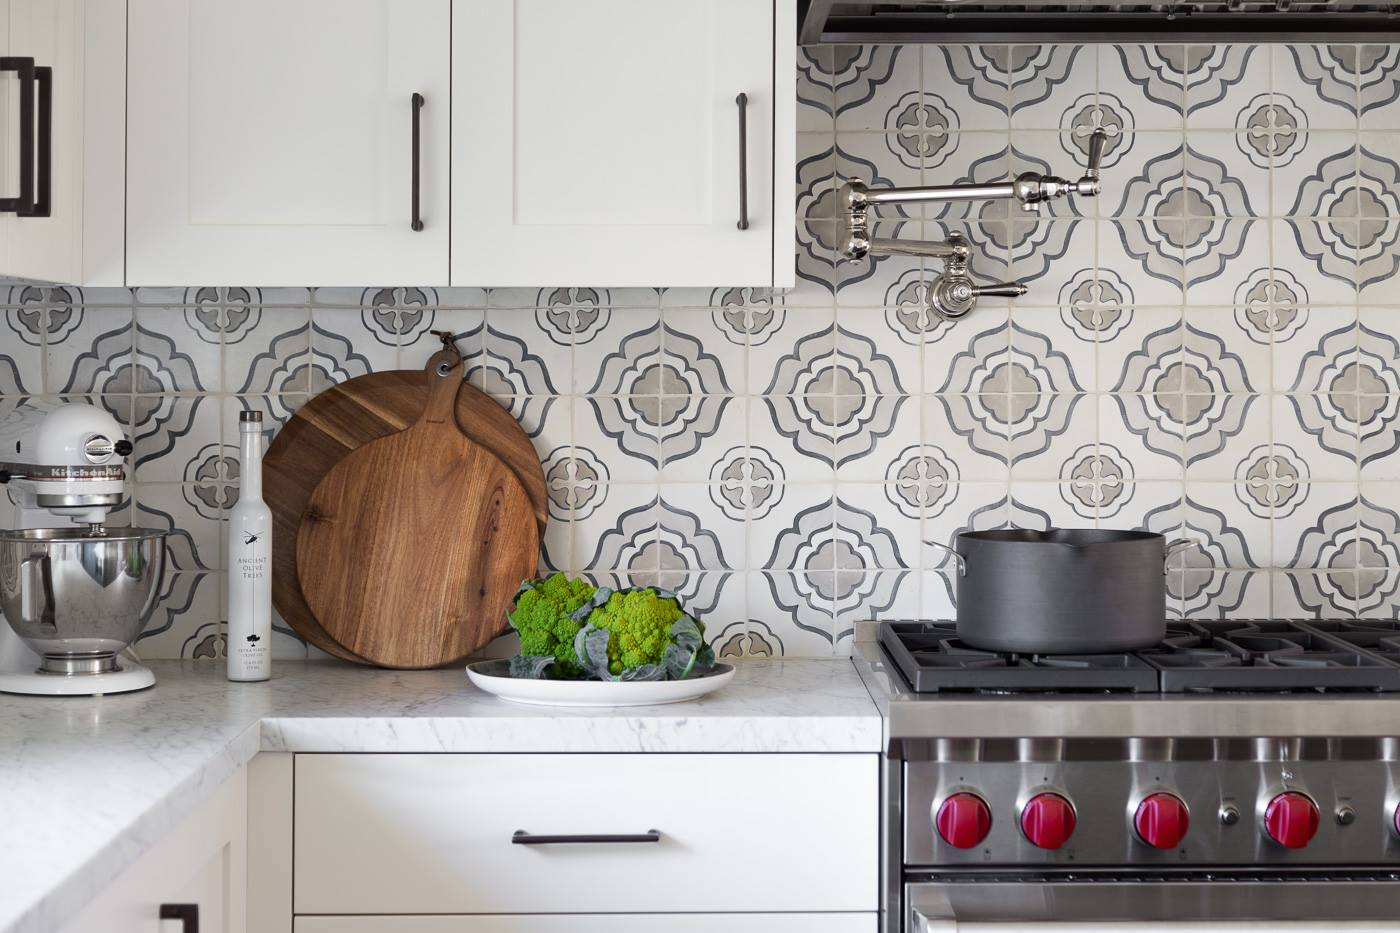 - 10 Backsplash Ideas To Make A Statement With Your Kitchen Remodel